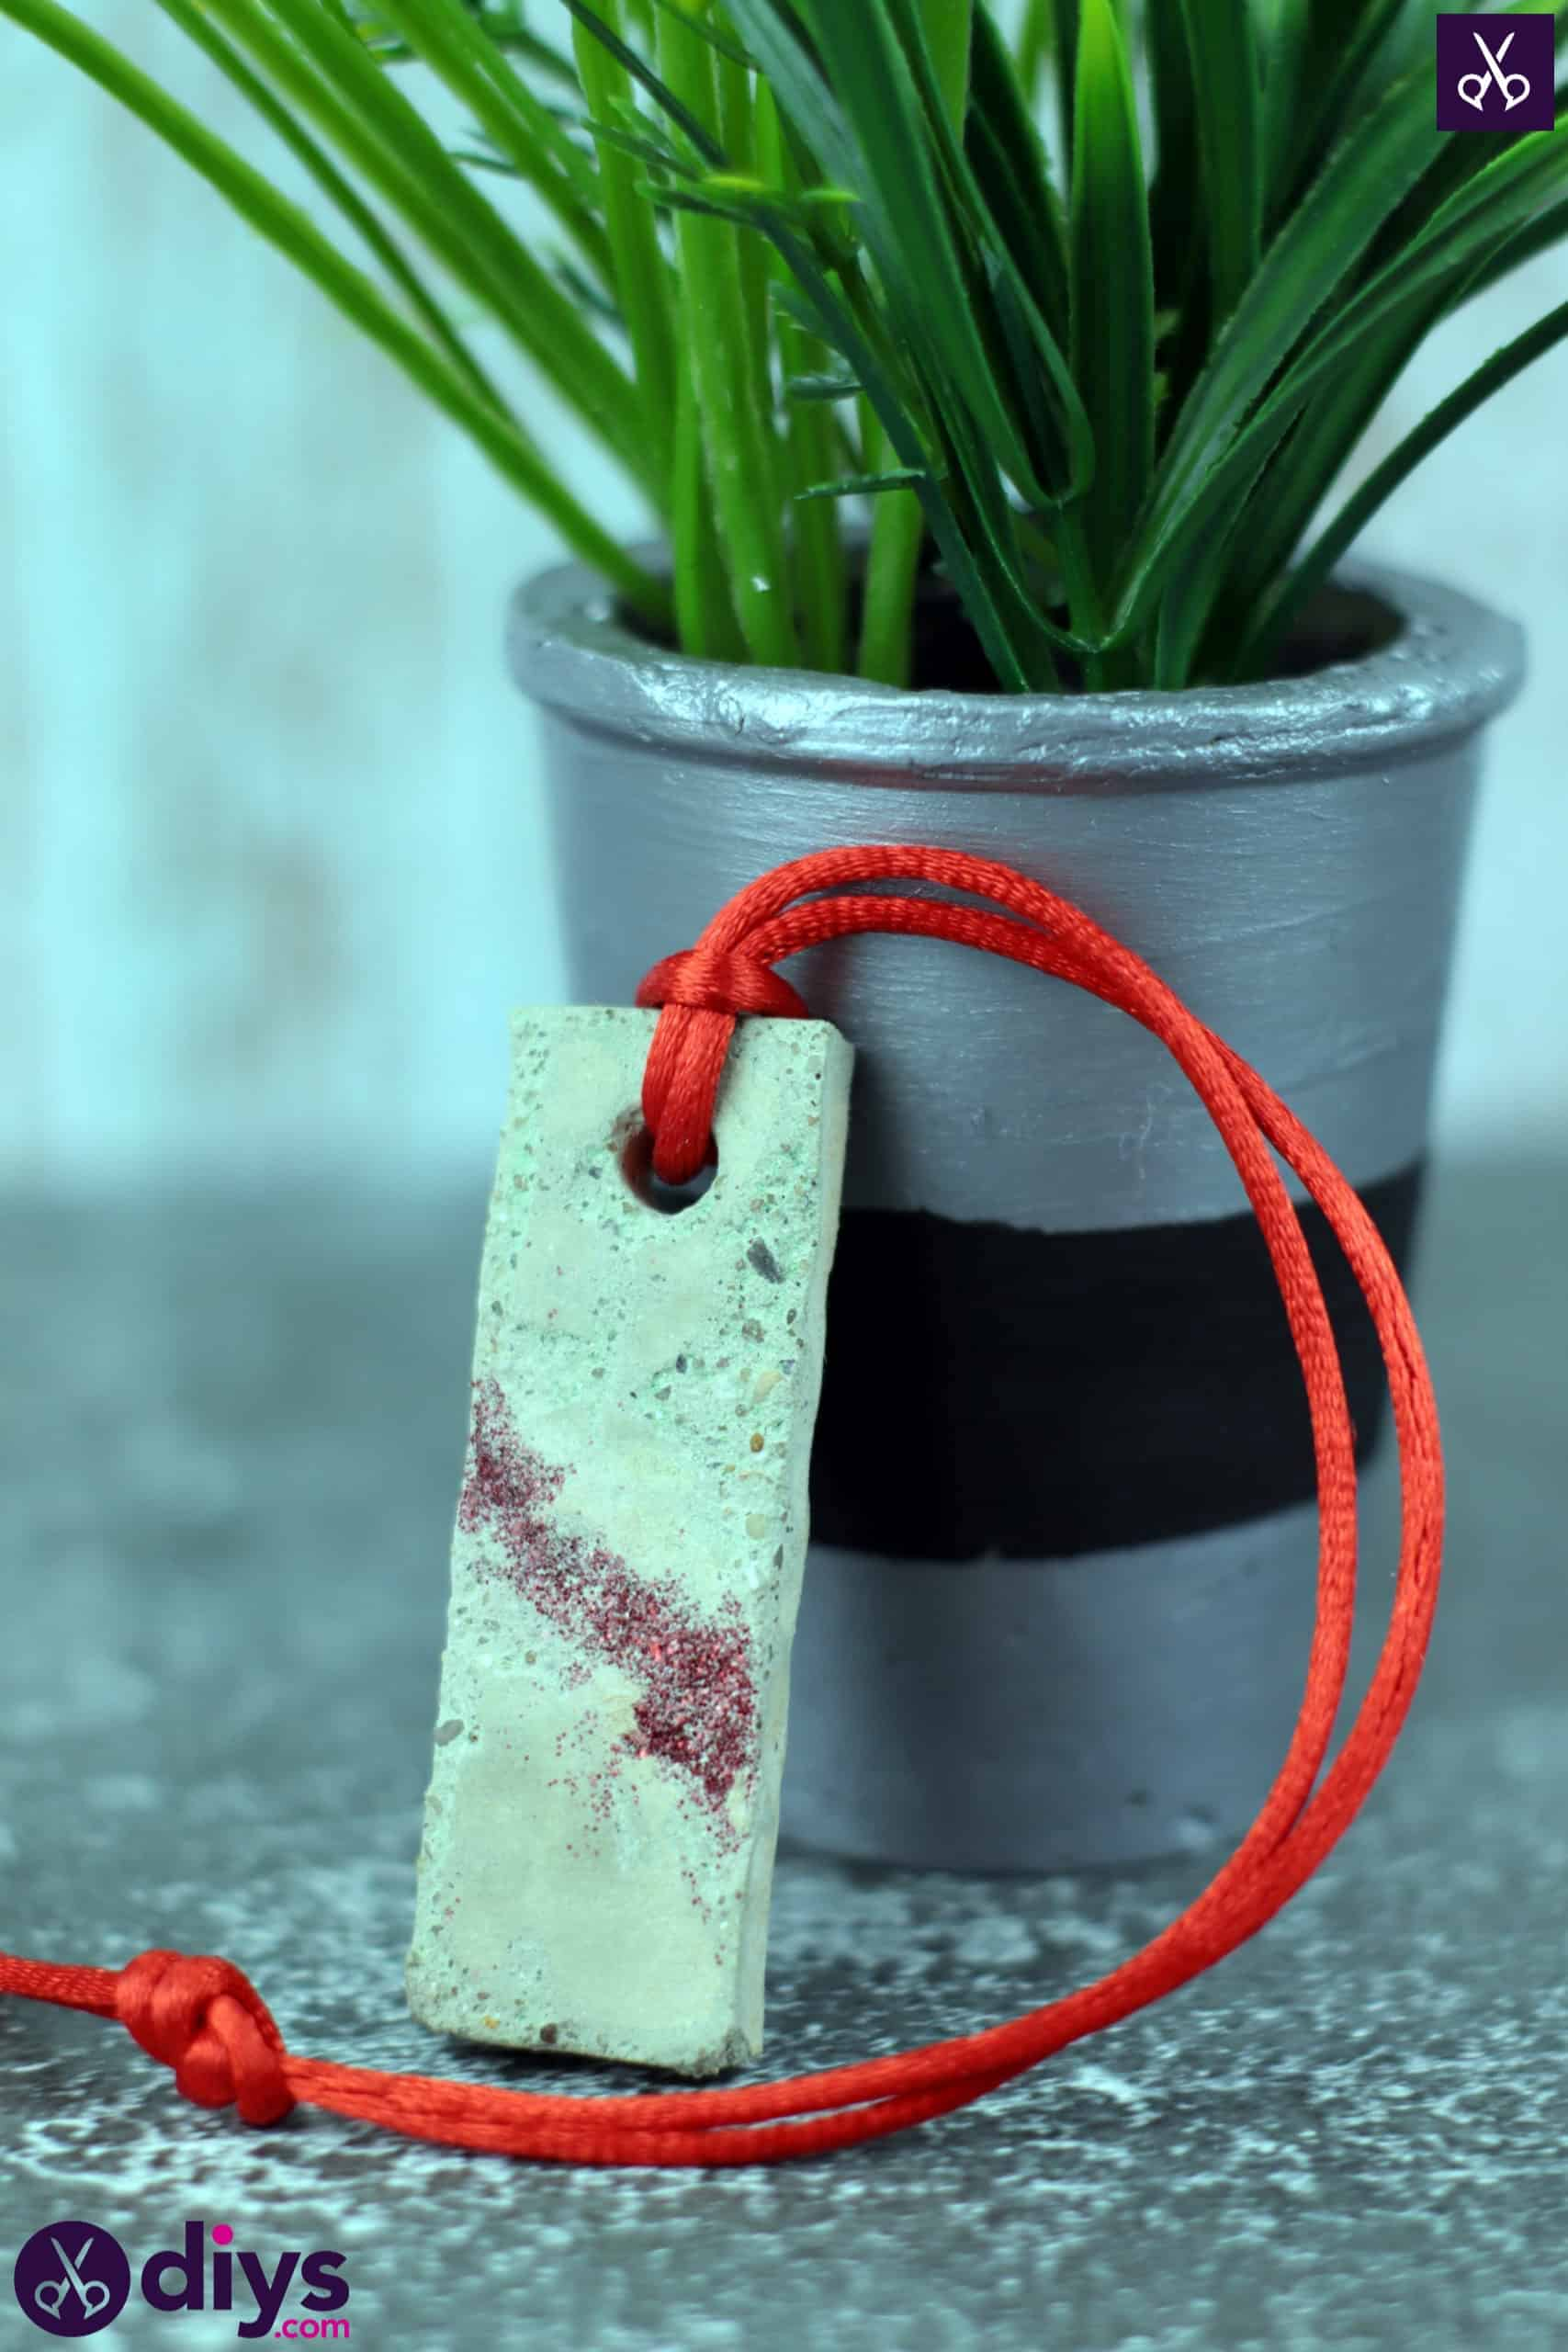 Diy concrete necklace with glitter display